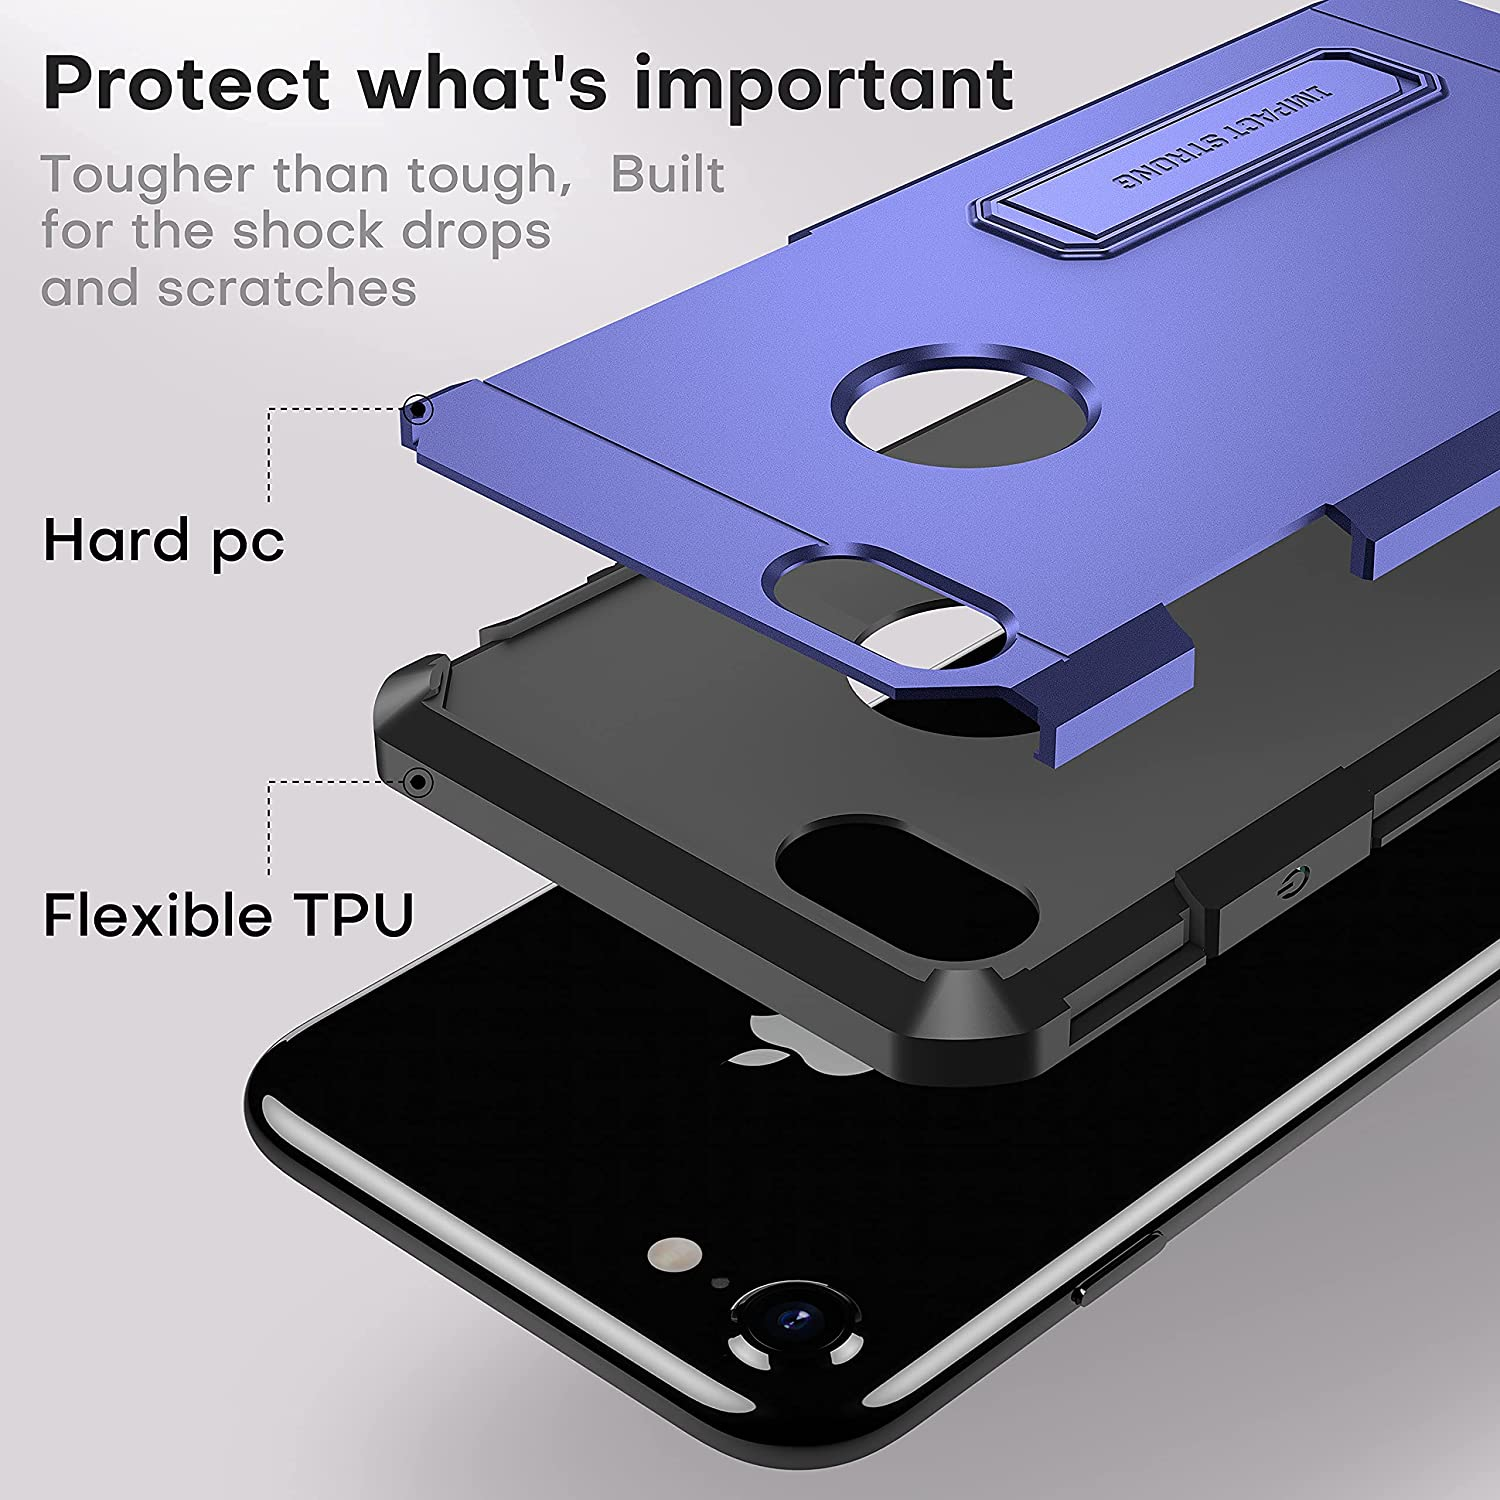 iPhone 7/8 Case, ImpactStrong Heavy Duty Dual Layer Protection Cover with Metal Kickstand Heavy Duty Case Designed for iPhone 7/8 (K-Navy Blue)